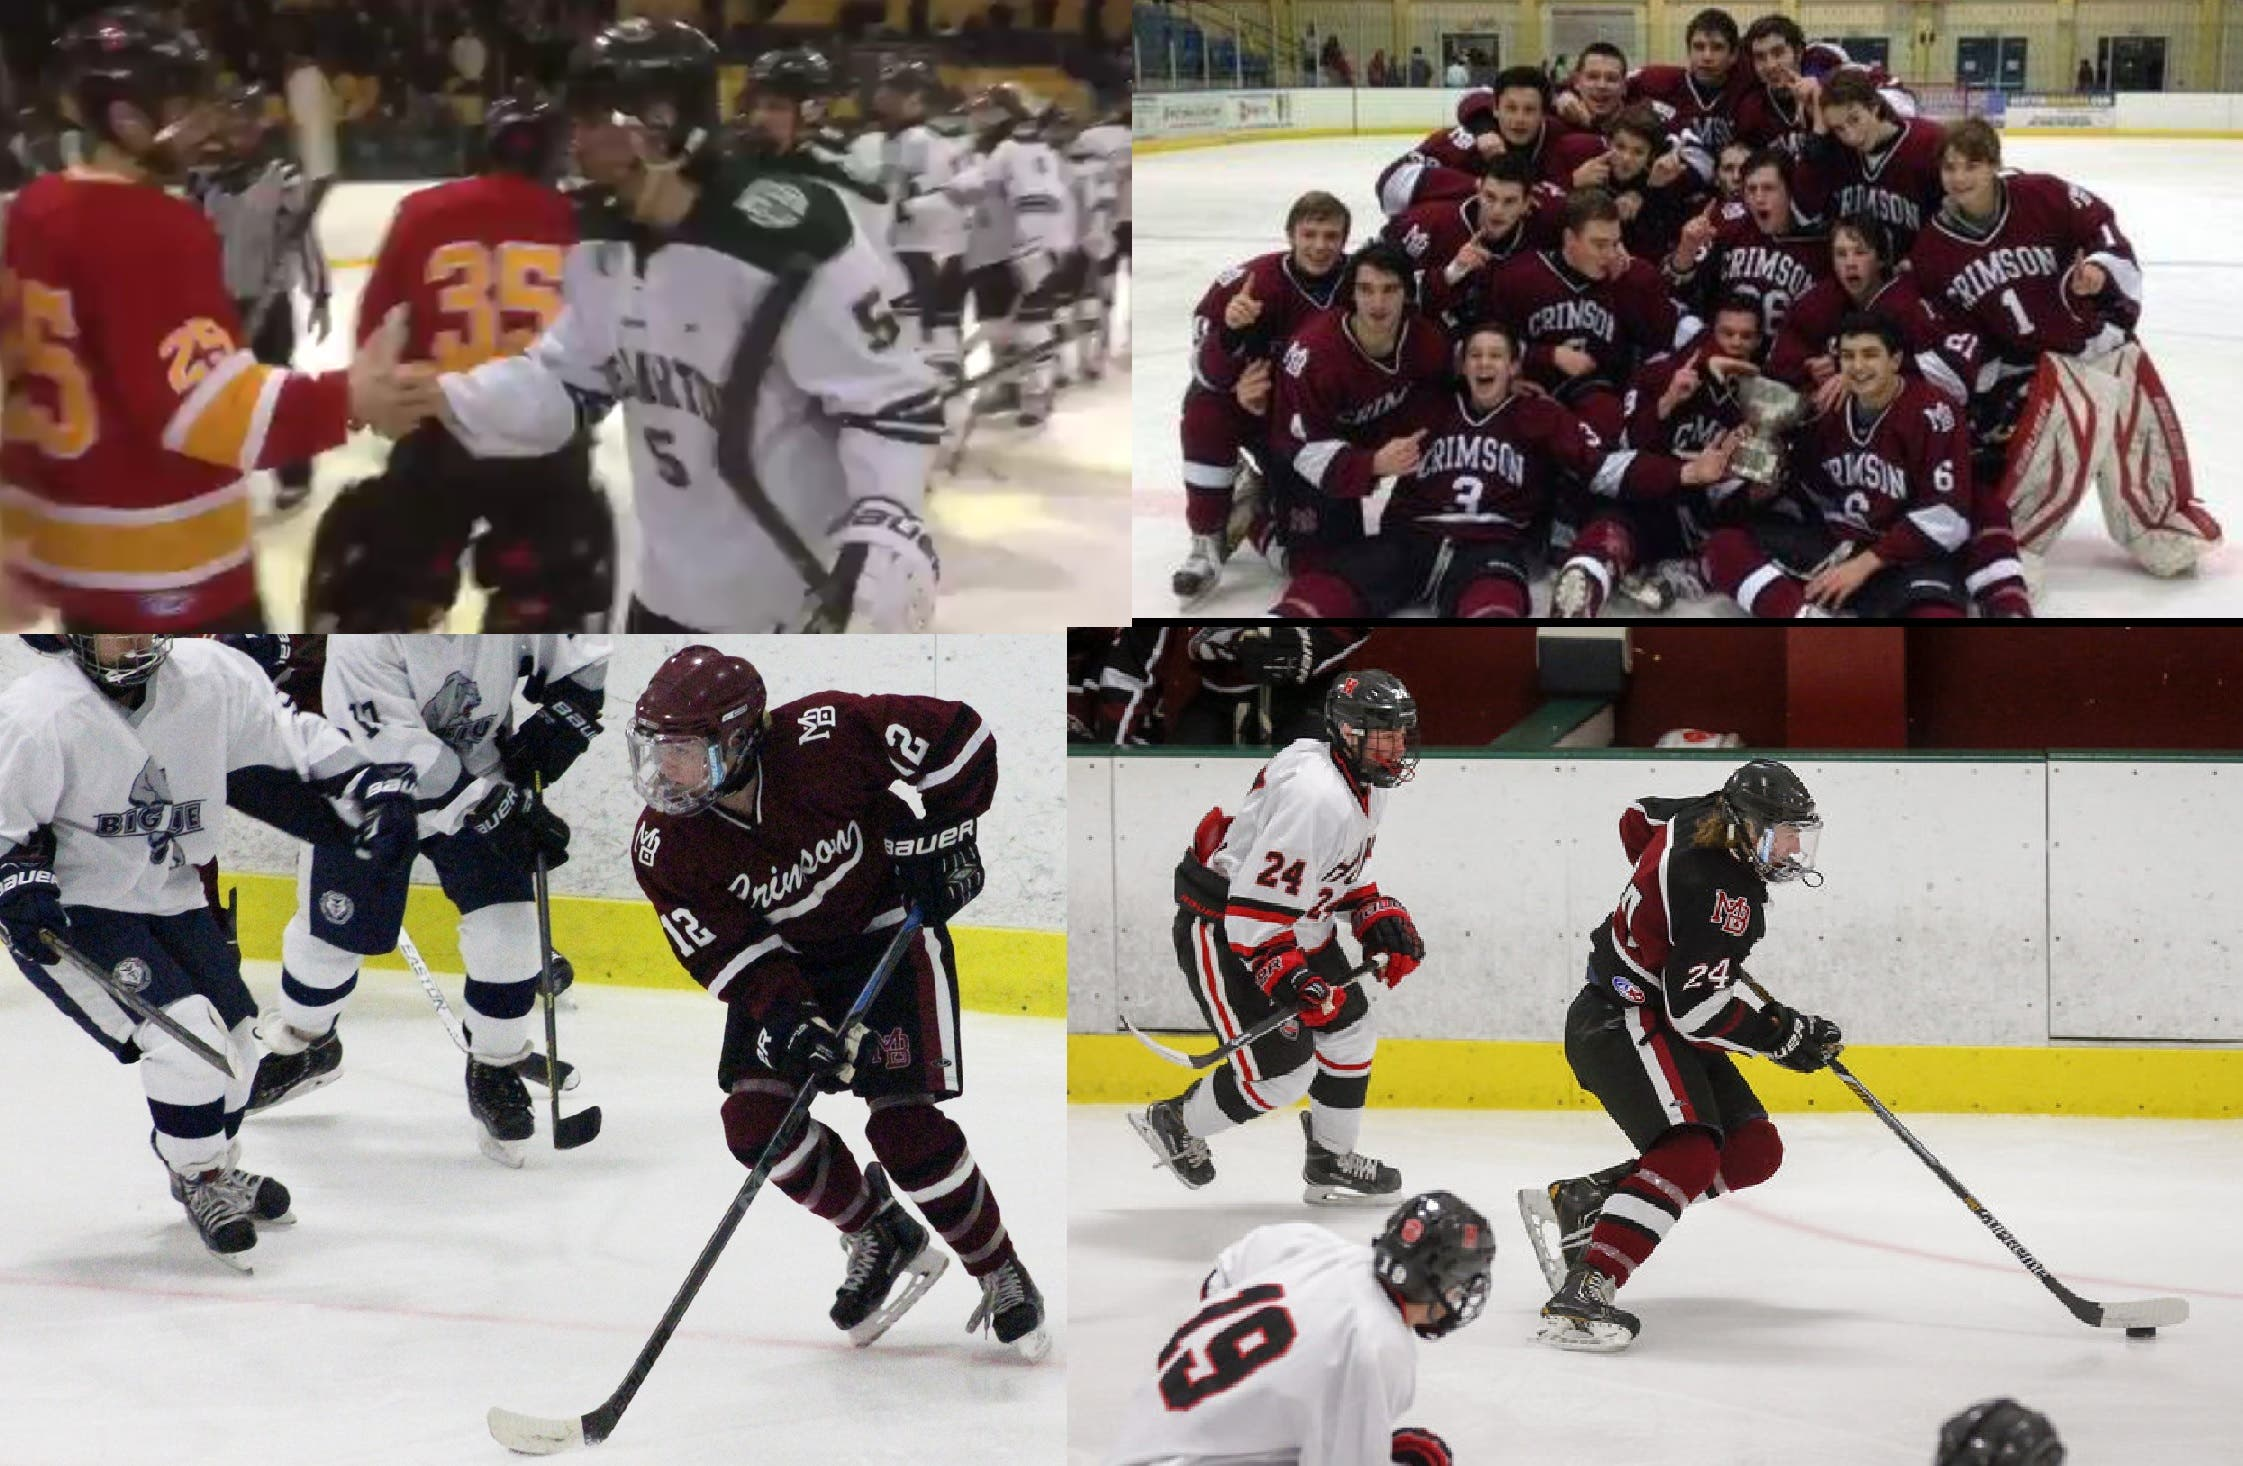 2014 2015 Hockey Season Wrap Up Morristown Nj Patch